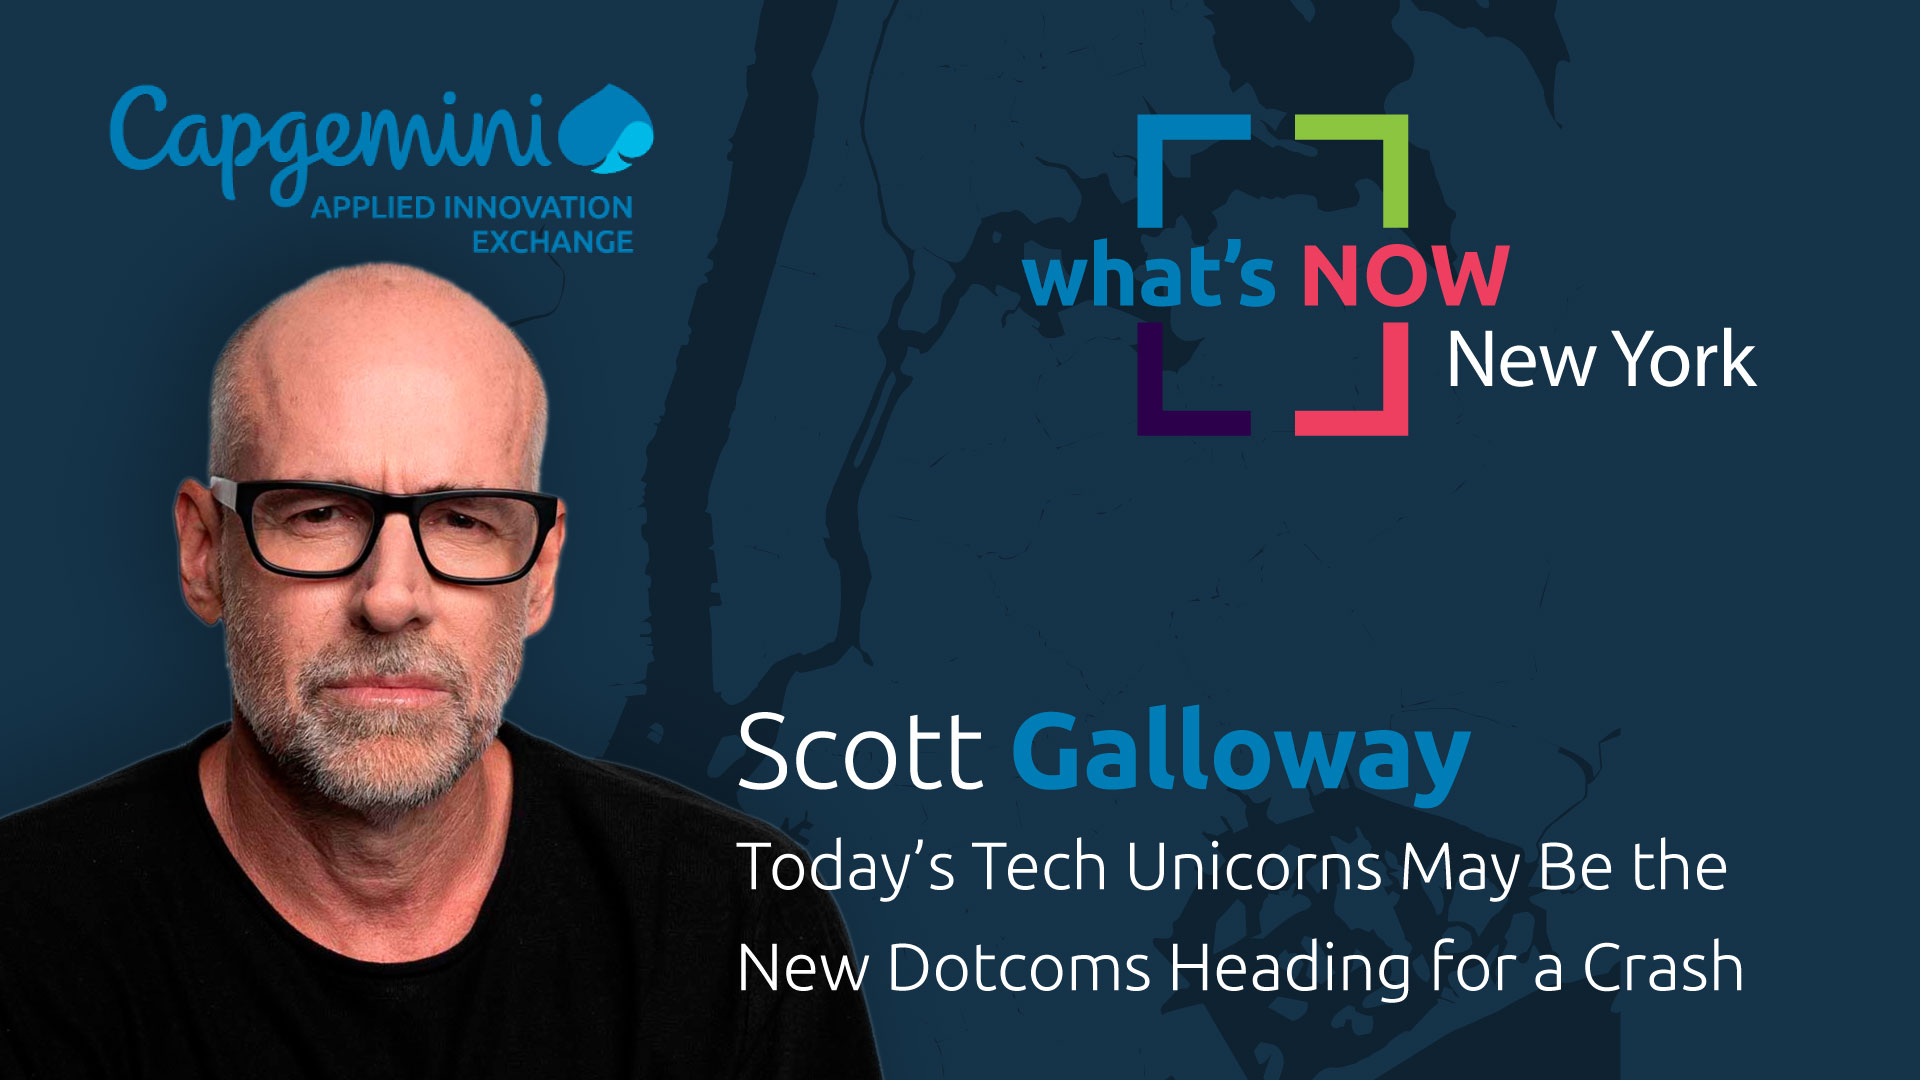 Today's Tech Unicorns May Be the New Dotcoms Heading for a Crash - with Scott Galloway